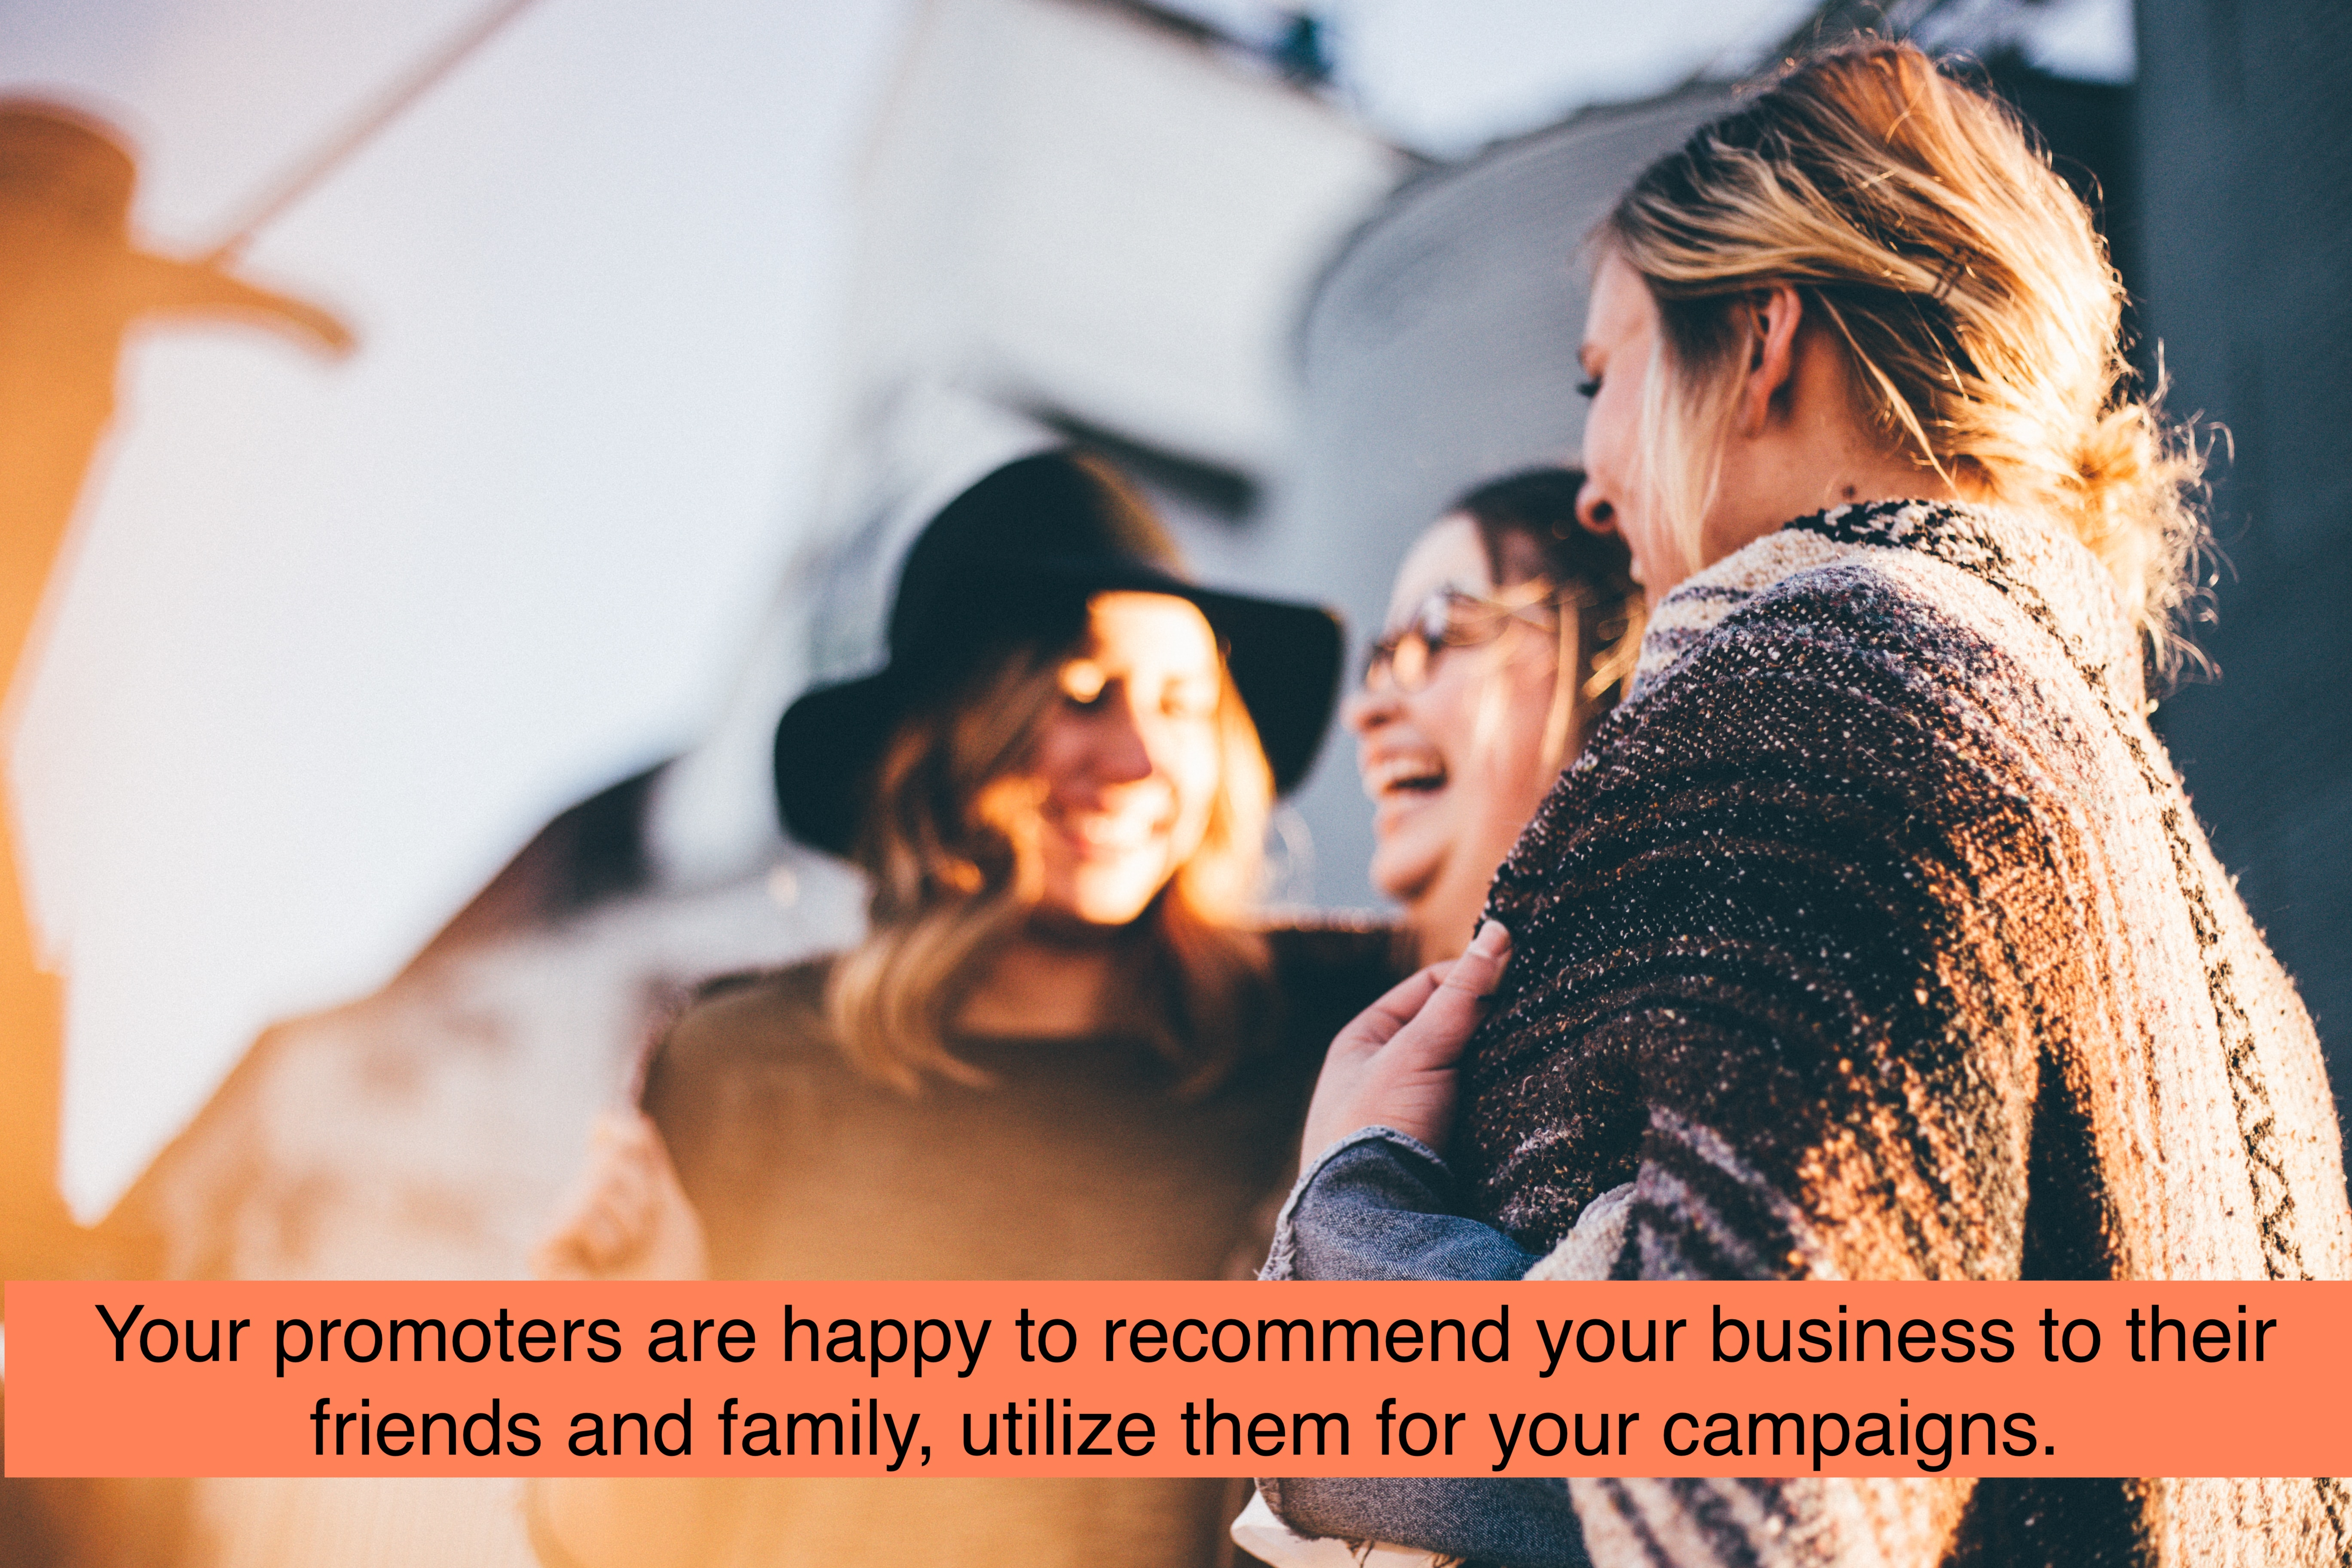 Promoters are happy to recommend your business to their friends and family, utilize them for your campaigns.